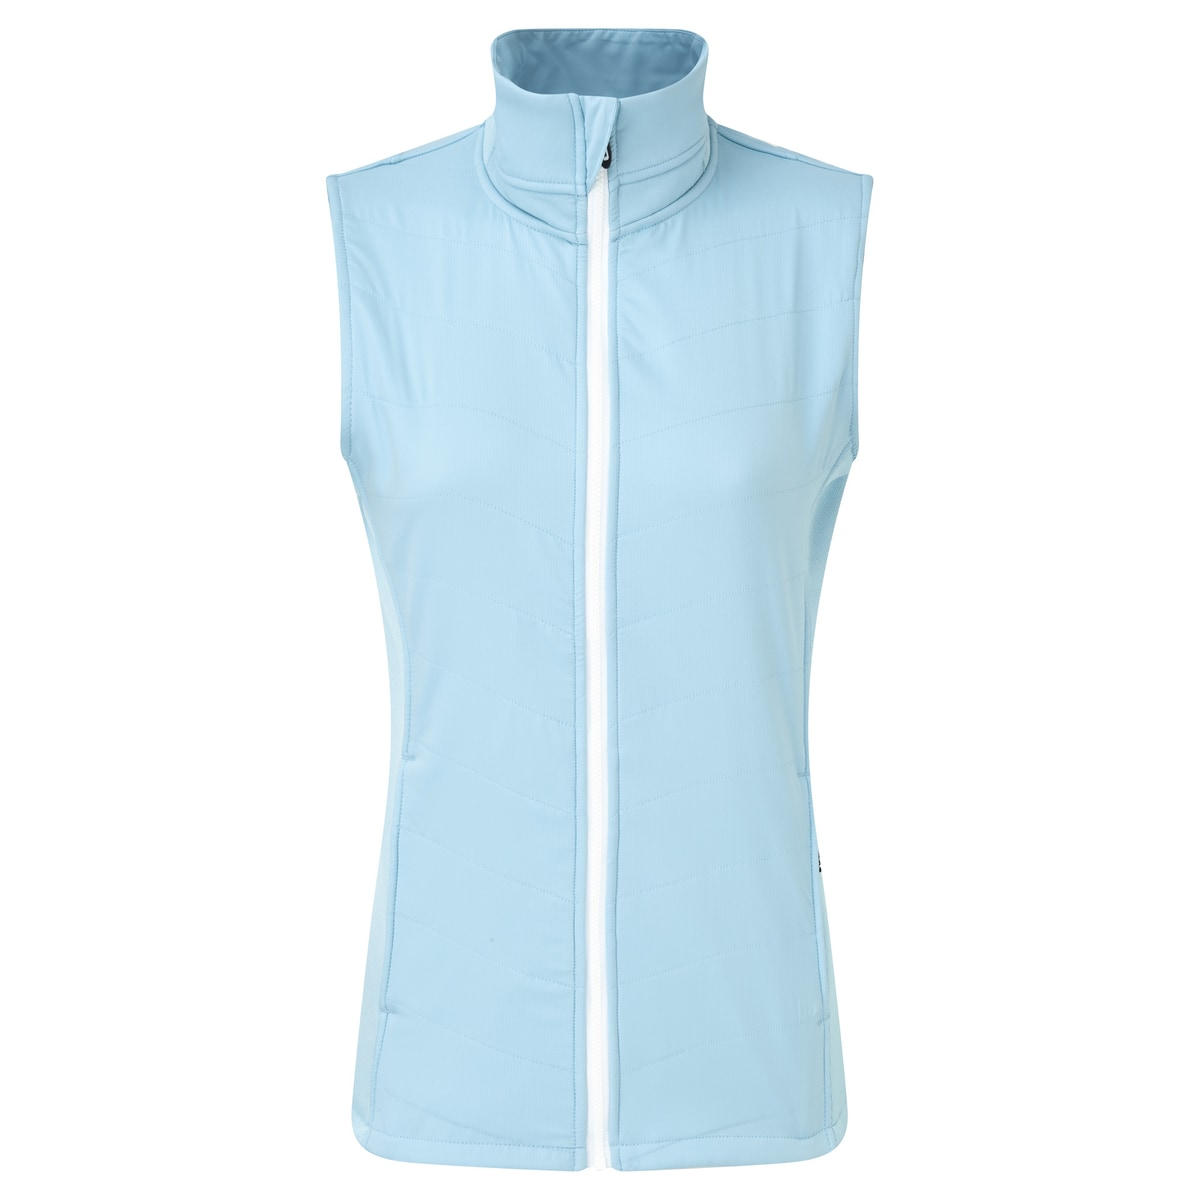 FJ Thermal Steppweste Damen